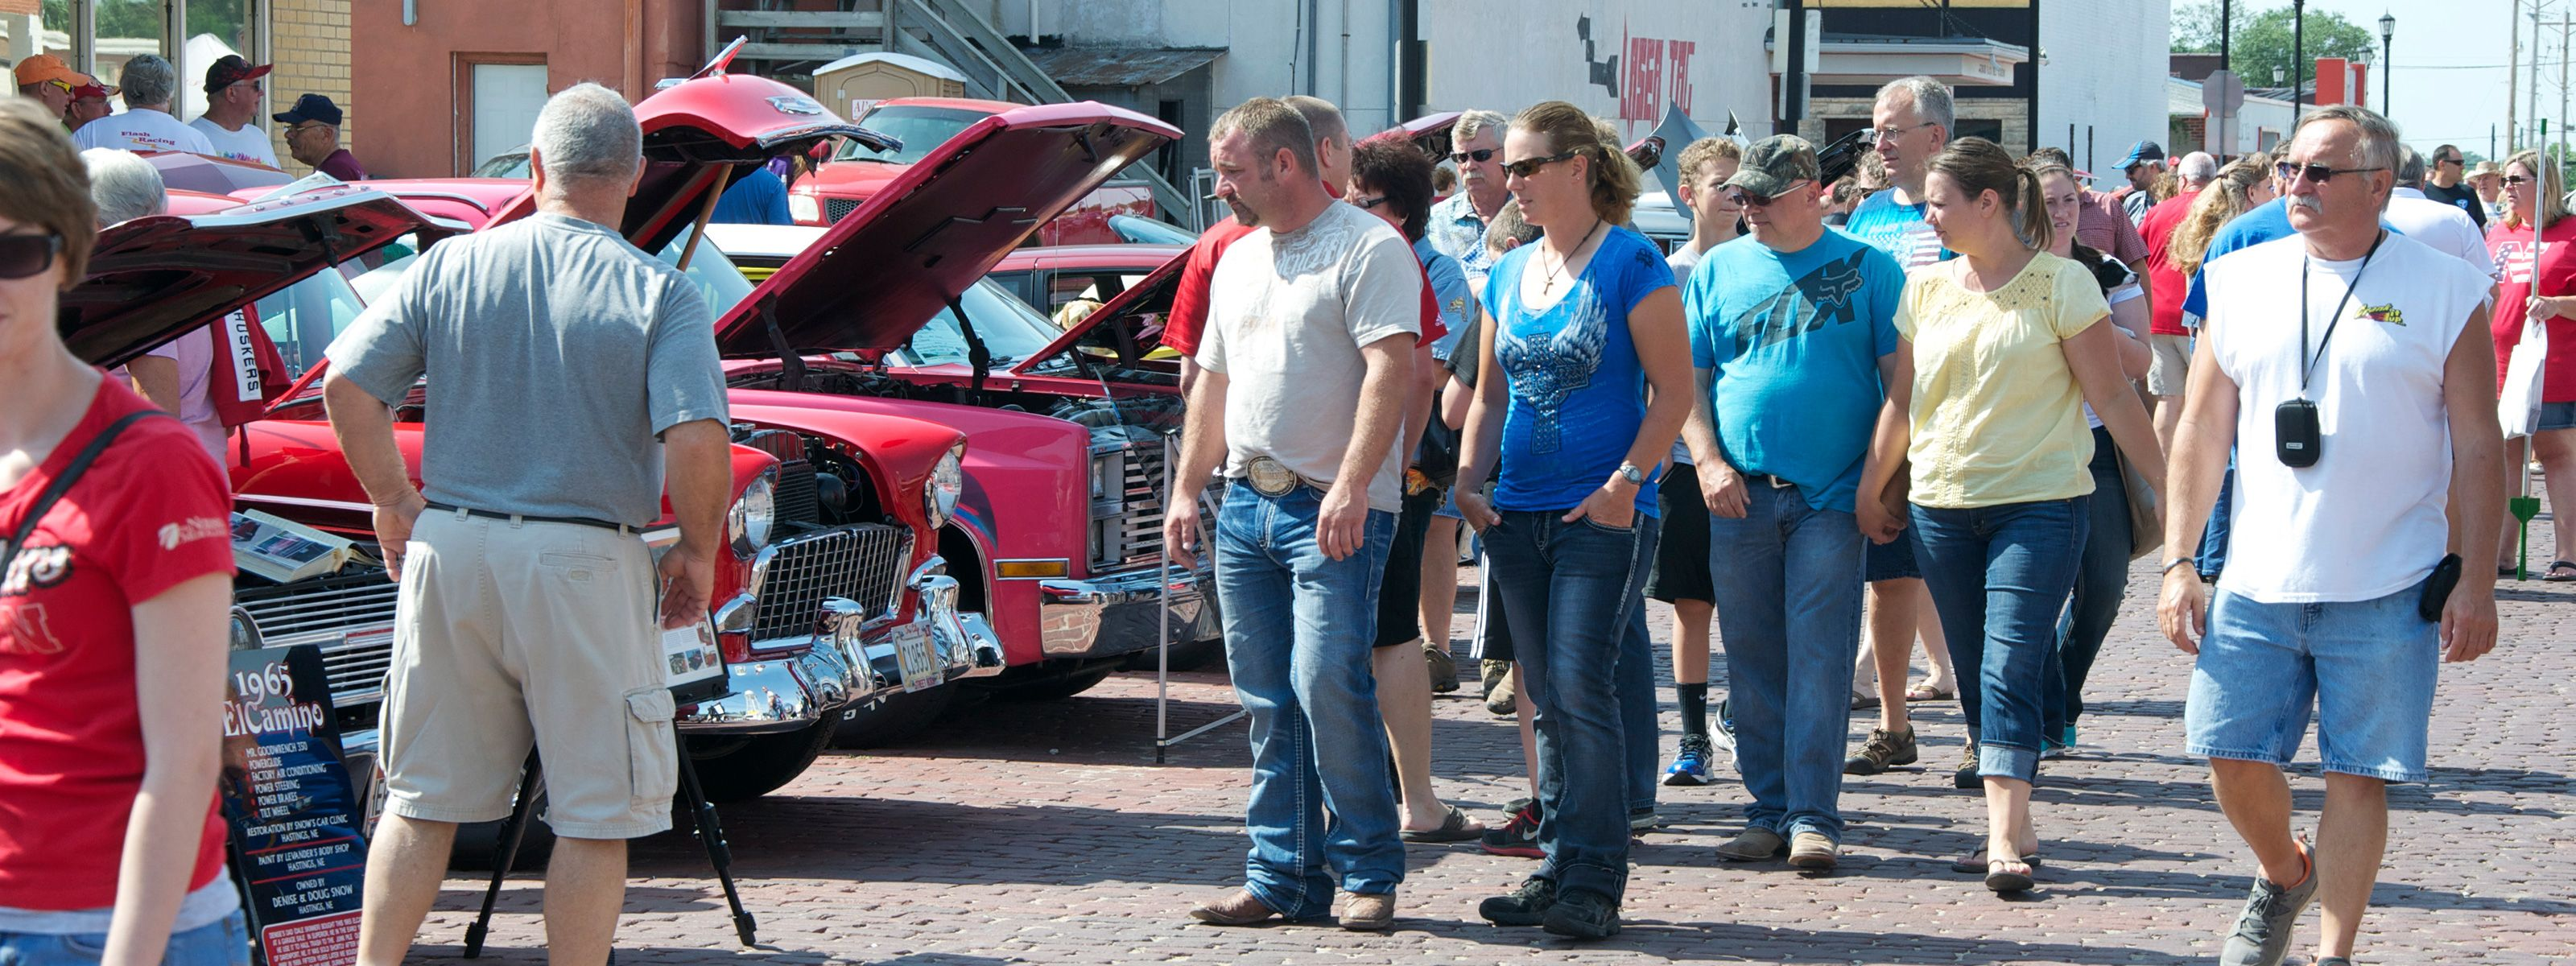 July 4th Car Show in Seward, Nebraska